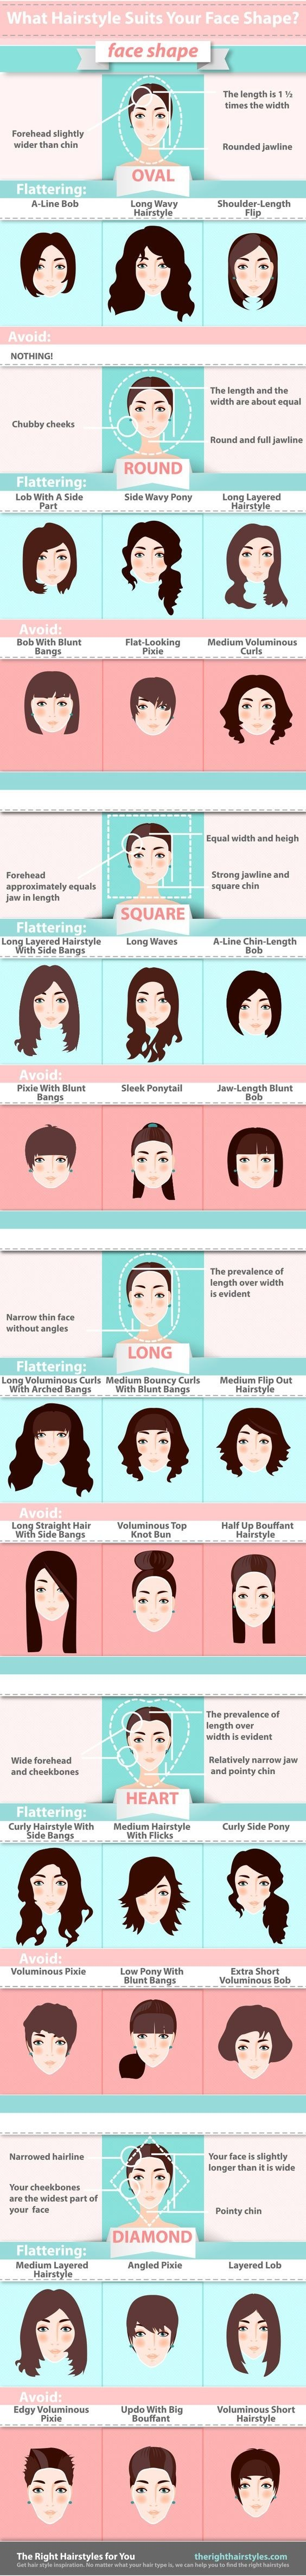 31 Charts That\u0027ll Help You Have The Best Hair Of Your Life